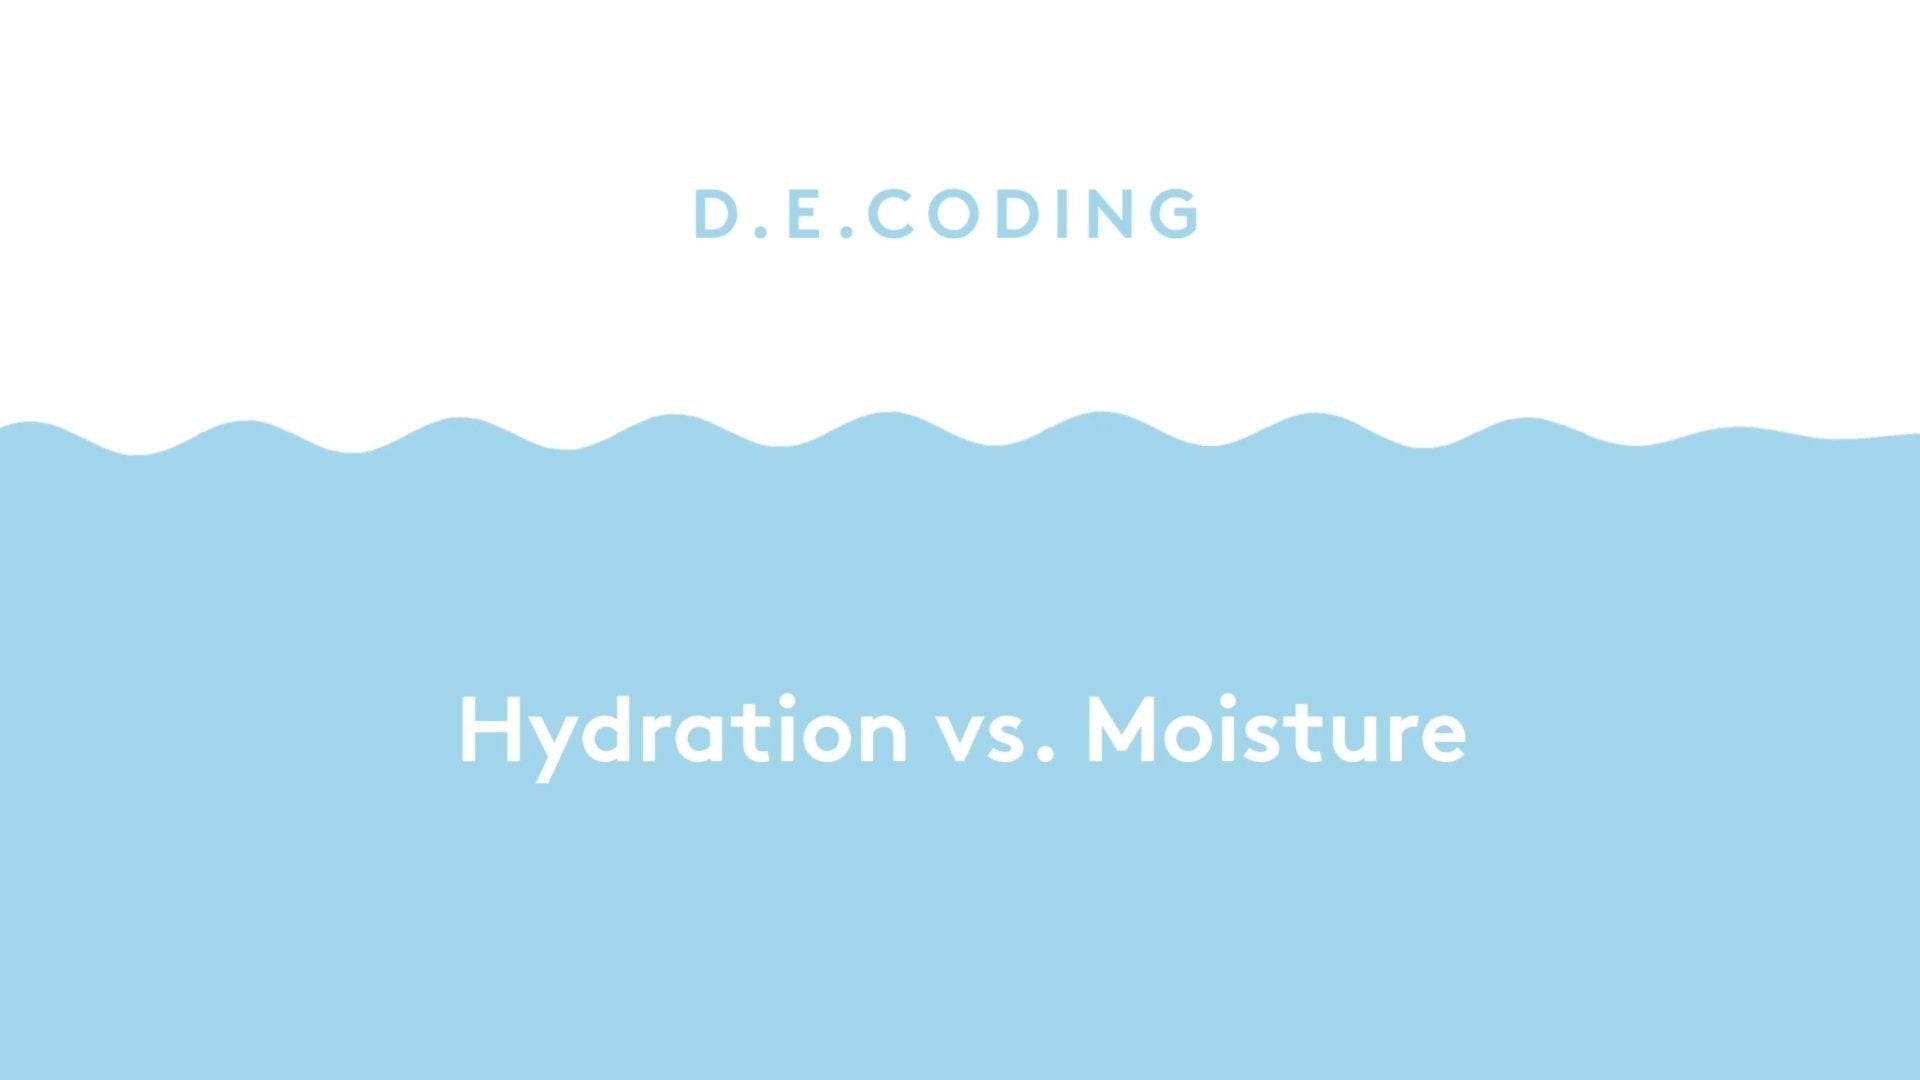 video explaining the differences between hydration and moisture in the skin